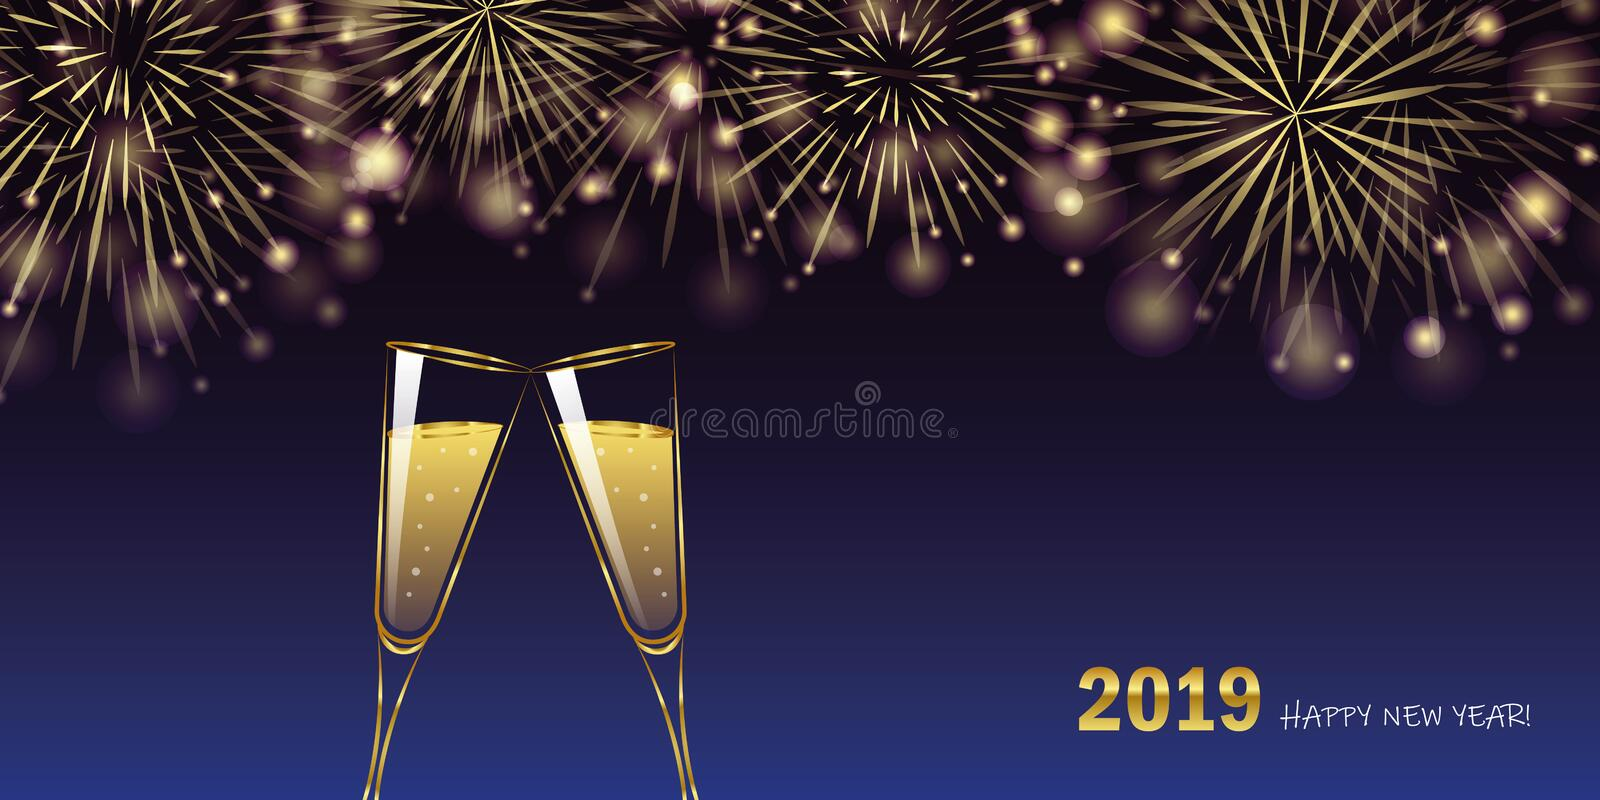 Happy new year 2019 golden firework and champagne glasses greeting card. Vector illustration EPS10 royalty free illustration